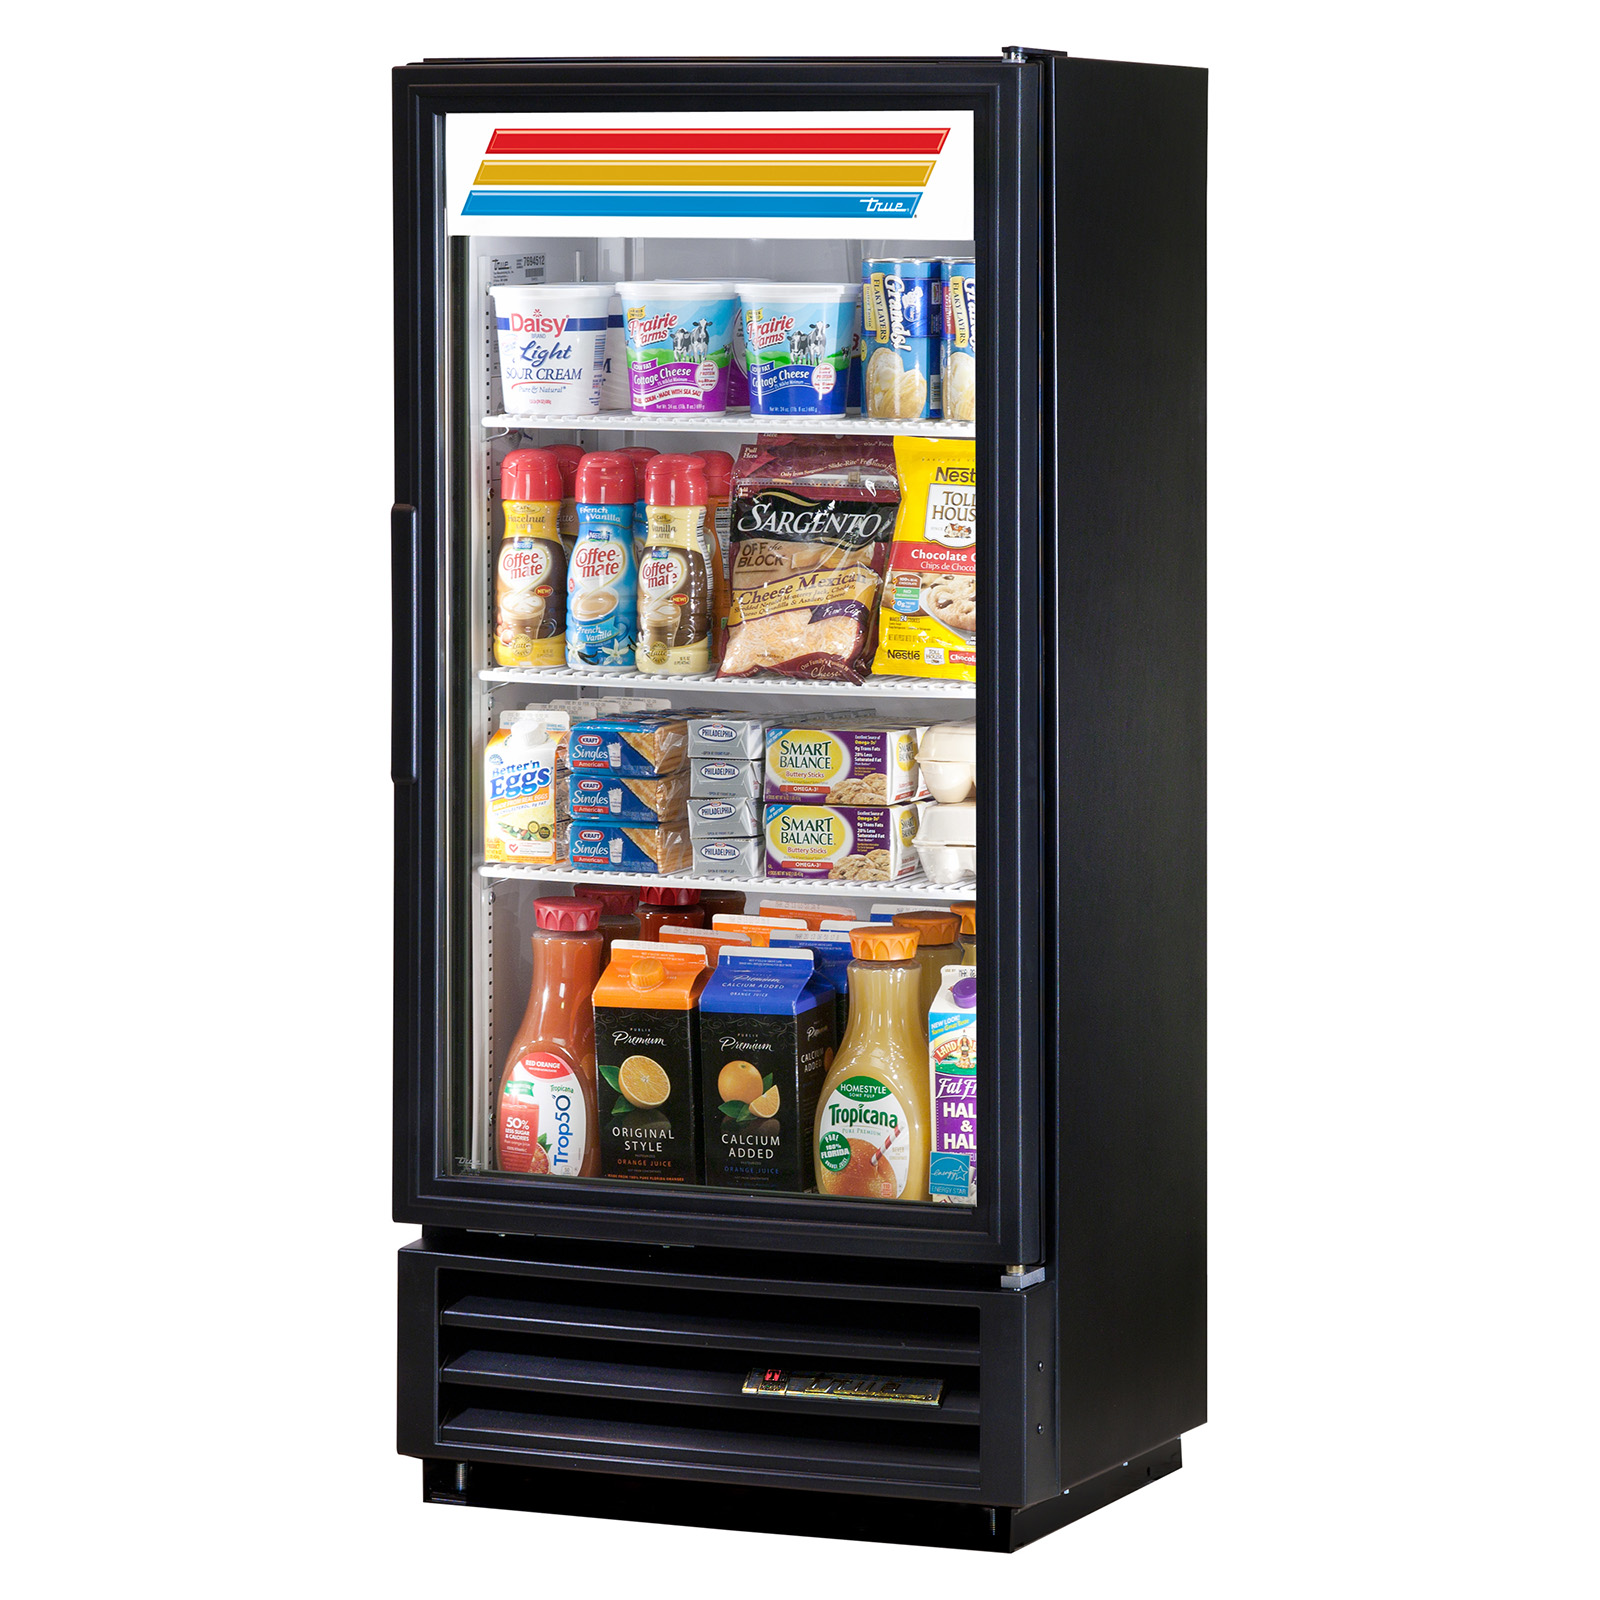 GDM-10SSL-LD True - Refrigerated Merchandiser one-section